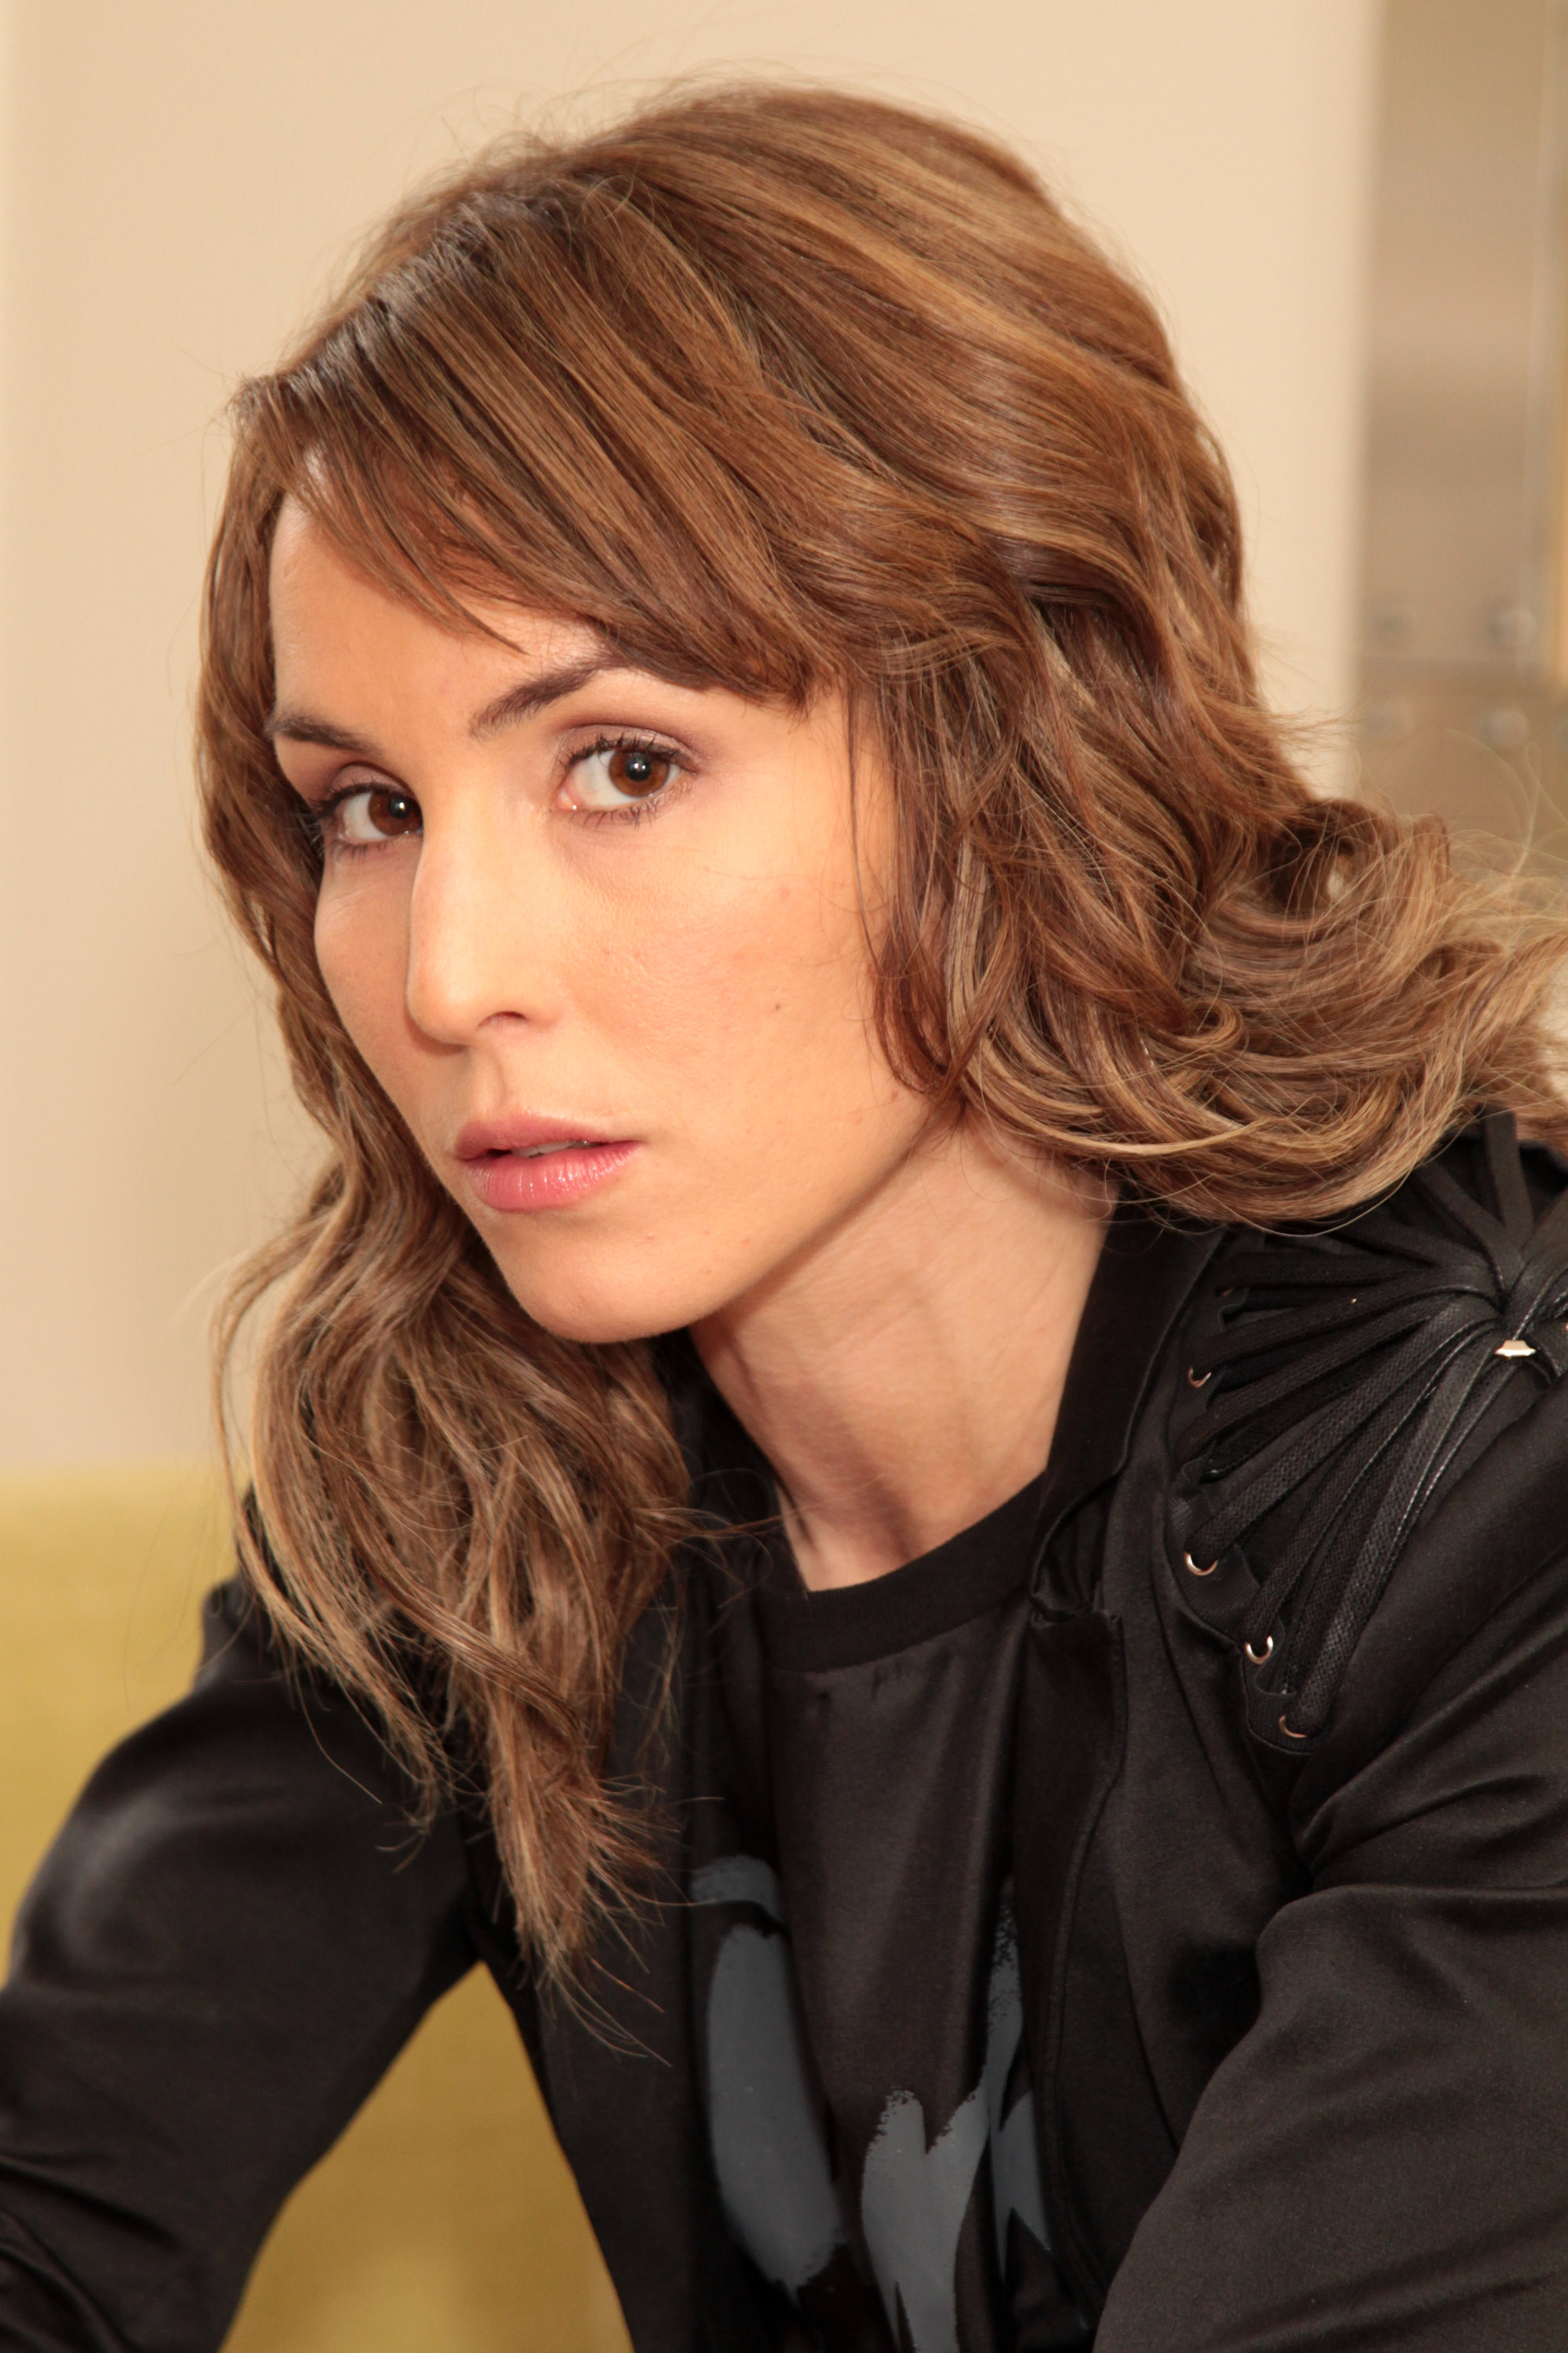 noomi rapace gif